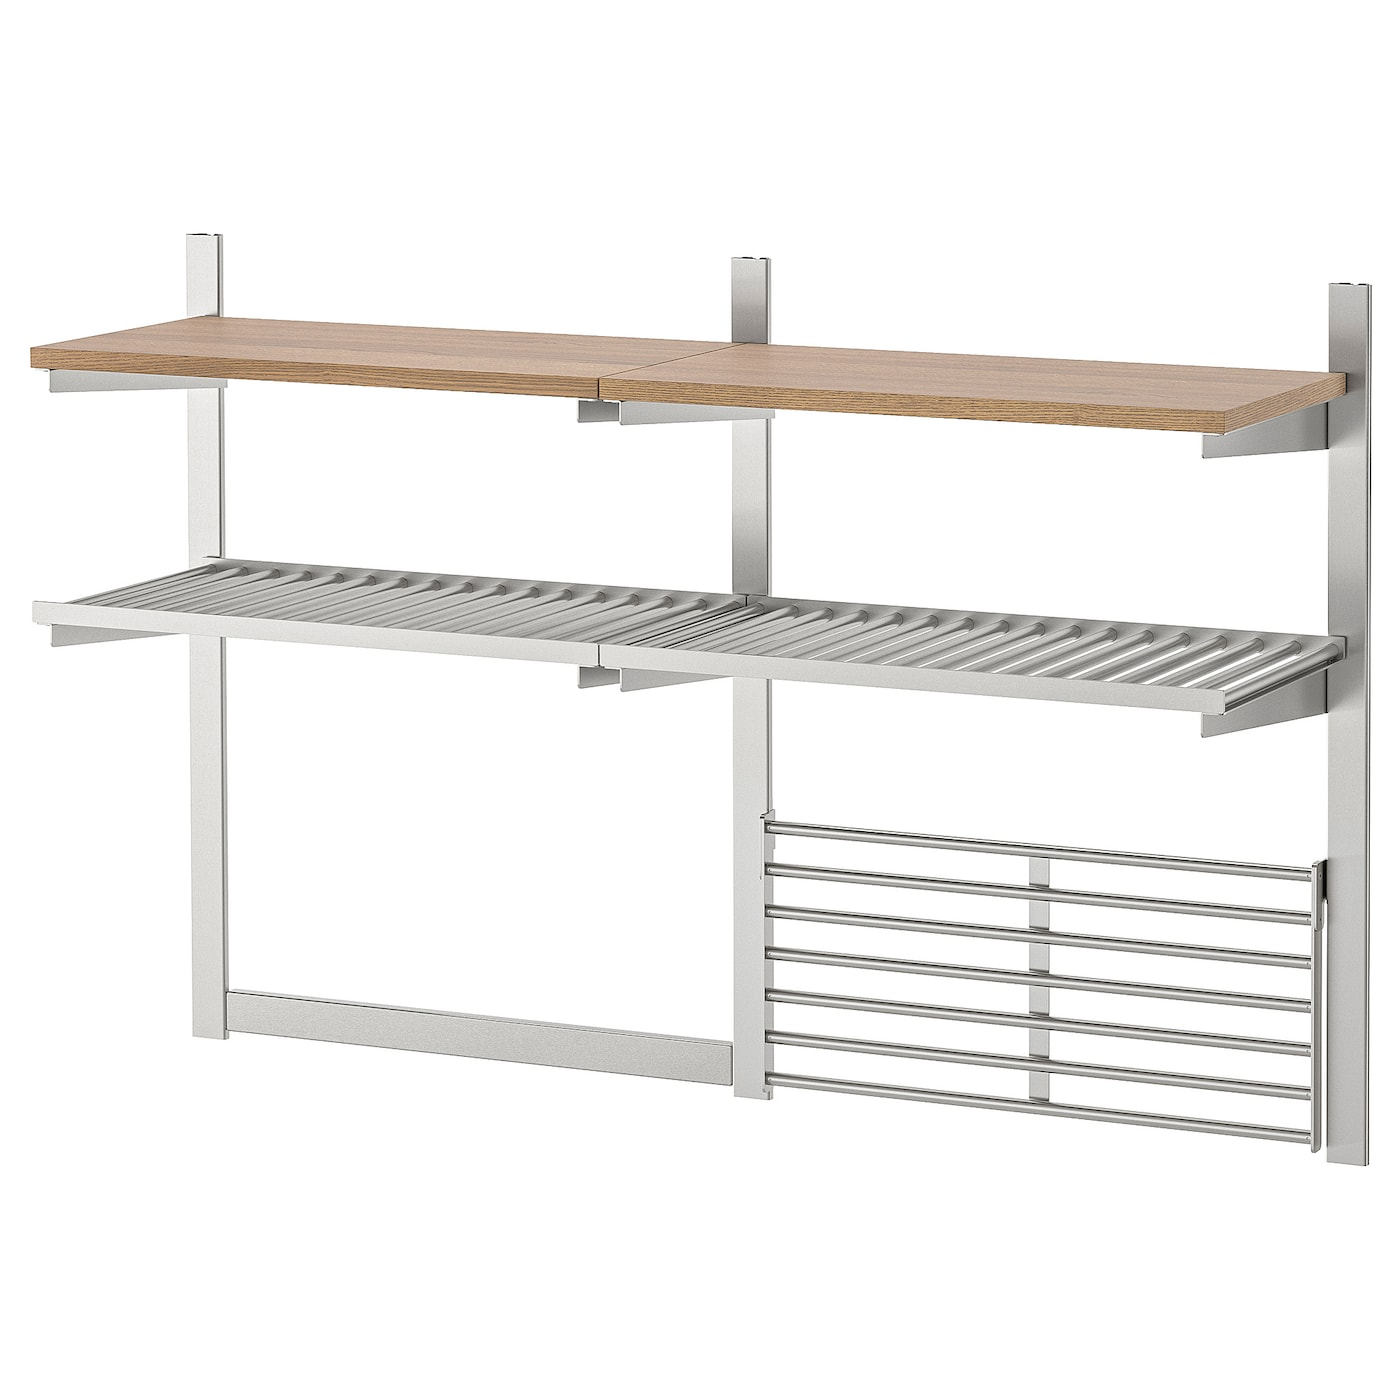 IKEA KUNGSFORS susp rail/shlf/mgnt knf rk/wll grid Gives you extra storage in your kitchen.